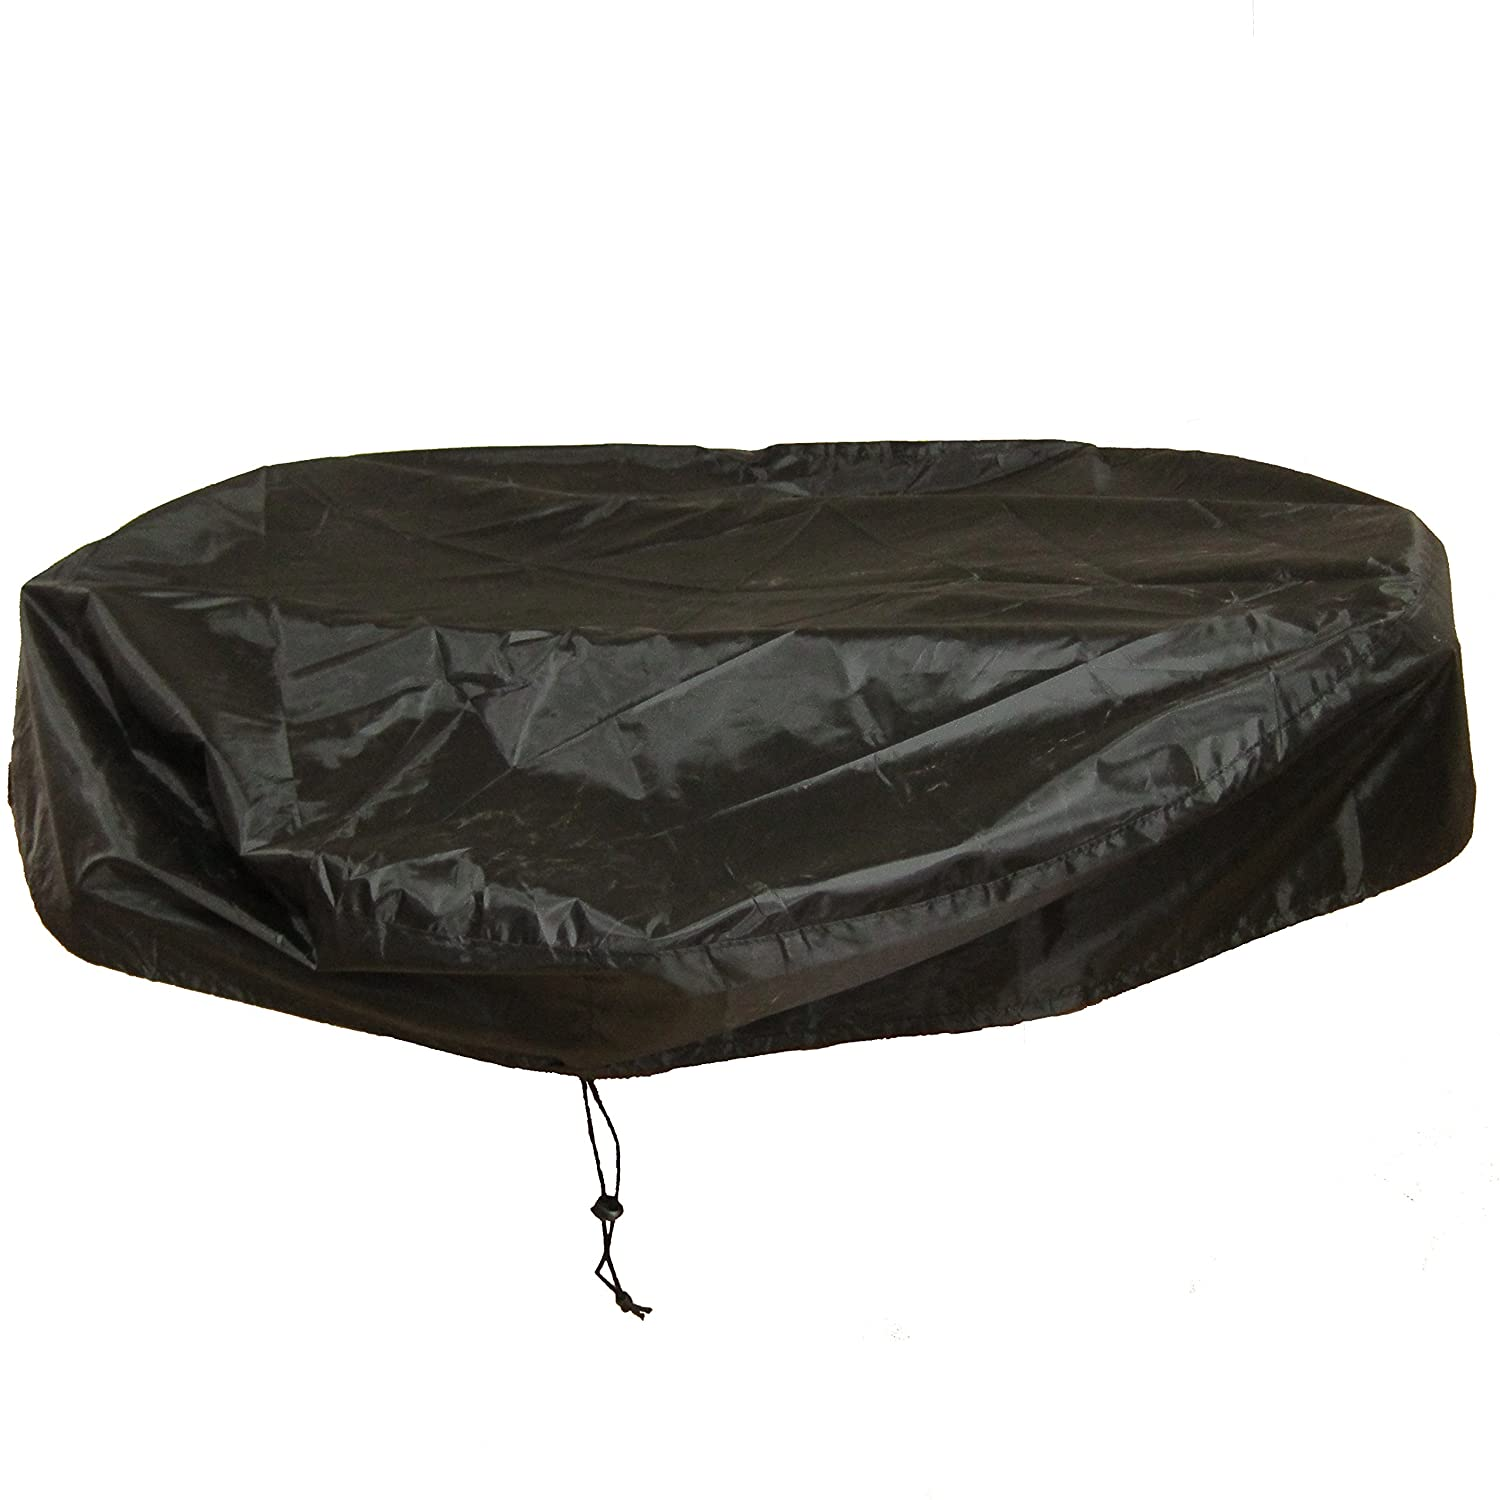 LU2000 Outdoor Round Fire Pit Cover, Firepit Protective Rain Cover, Waterproof UV Protect Rain Cover, Log Burner Cover (44